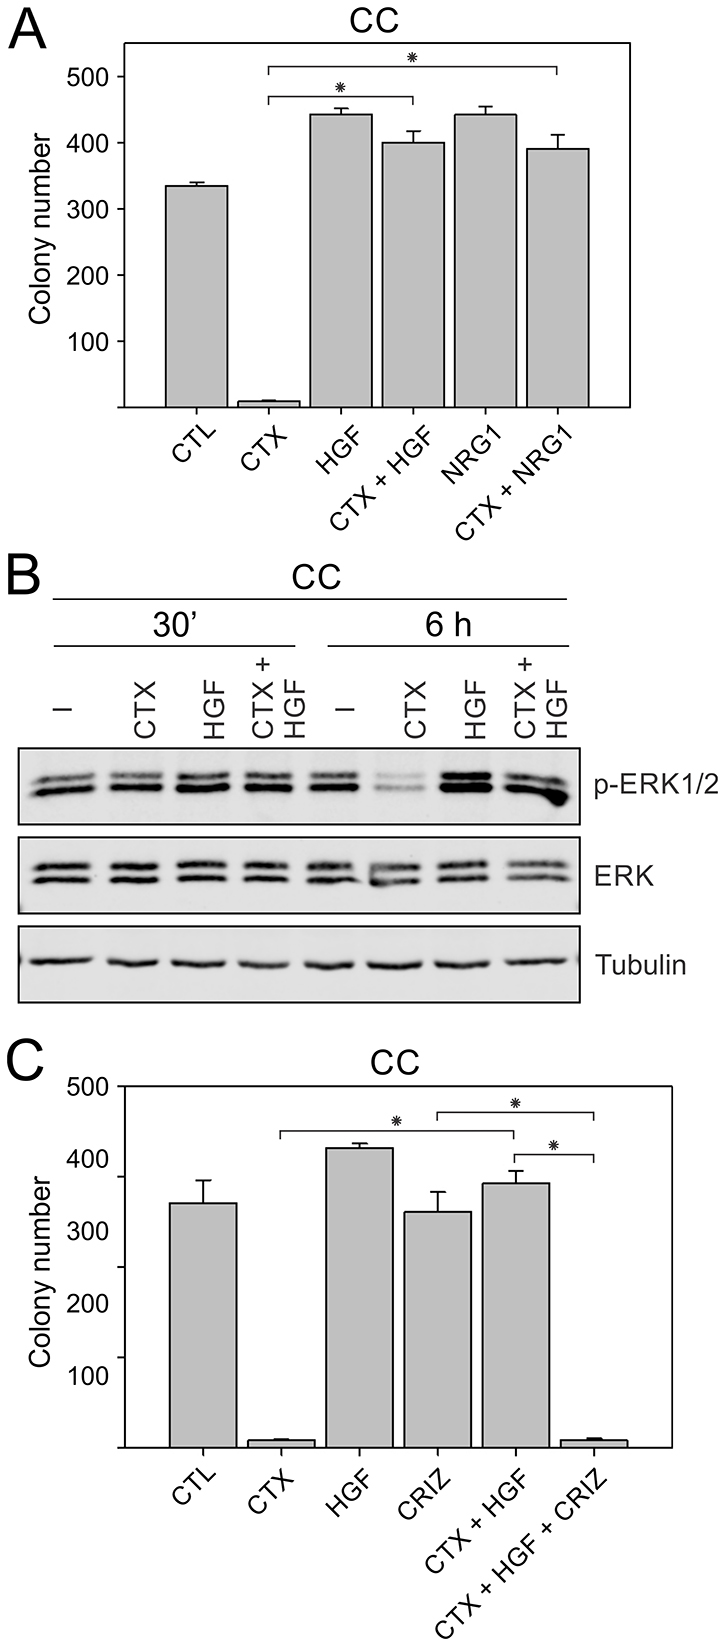 Inducing cetuximab resistance in CC cells by addition of RTK ligands, HGF and NRG1.